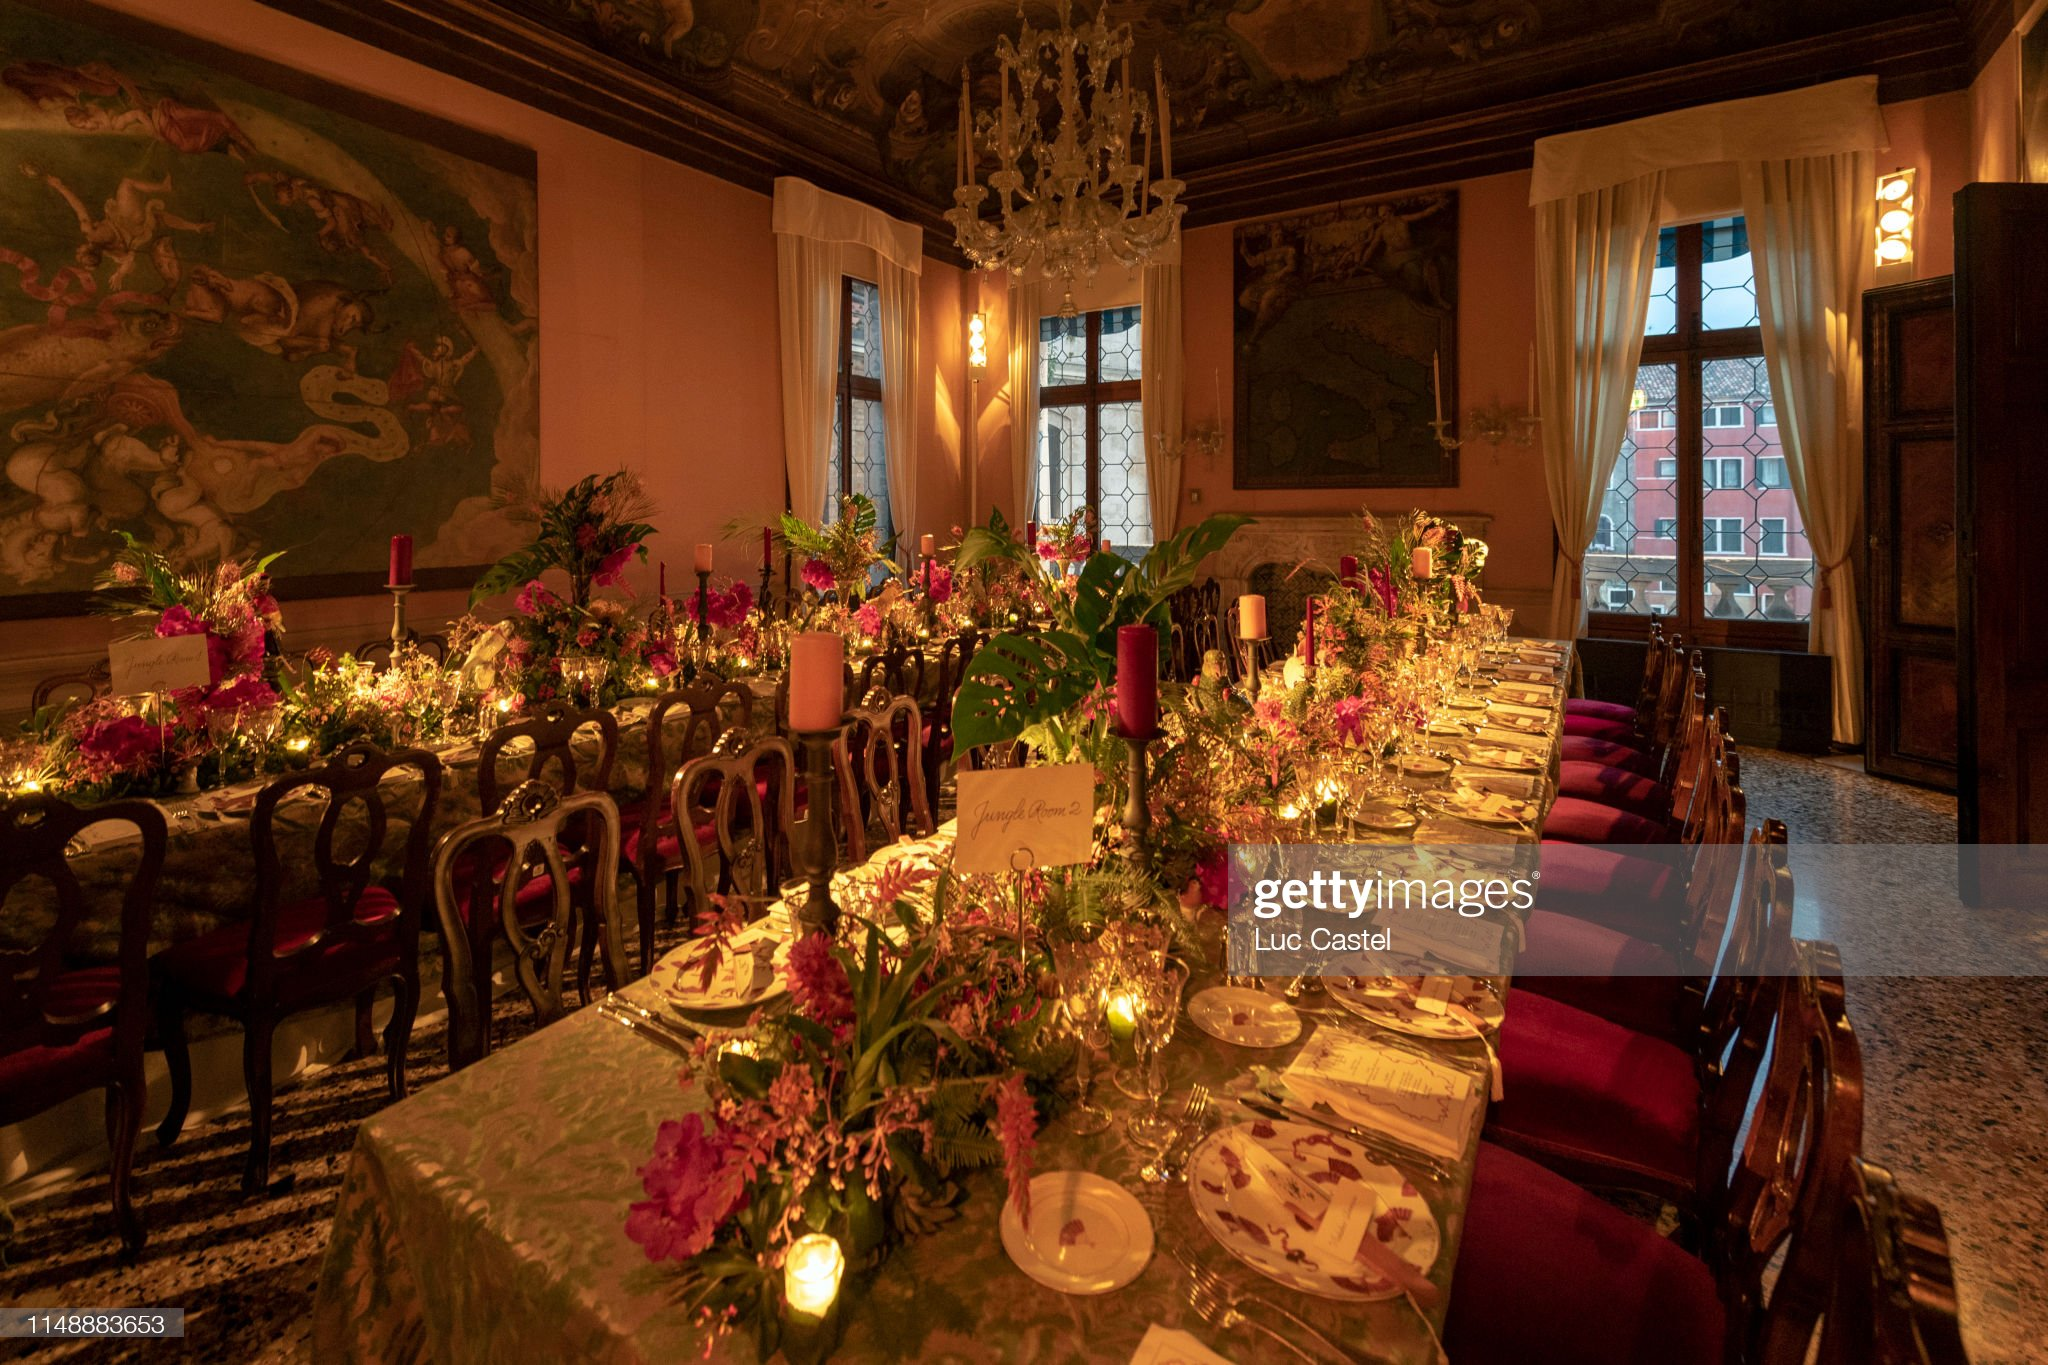 https://media.gettyimages.com/photos/illustration-view-of-the-tiepolo-ball-dior-in-venice-dinner-gala-at-picture-id1148883653?s=2048x2048